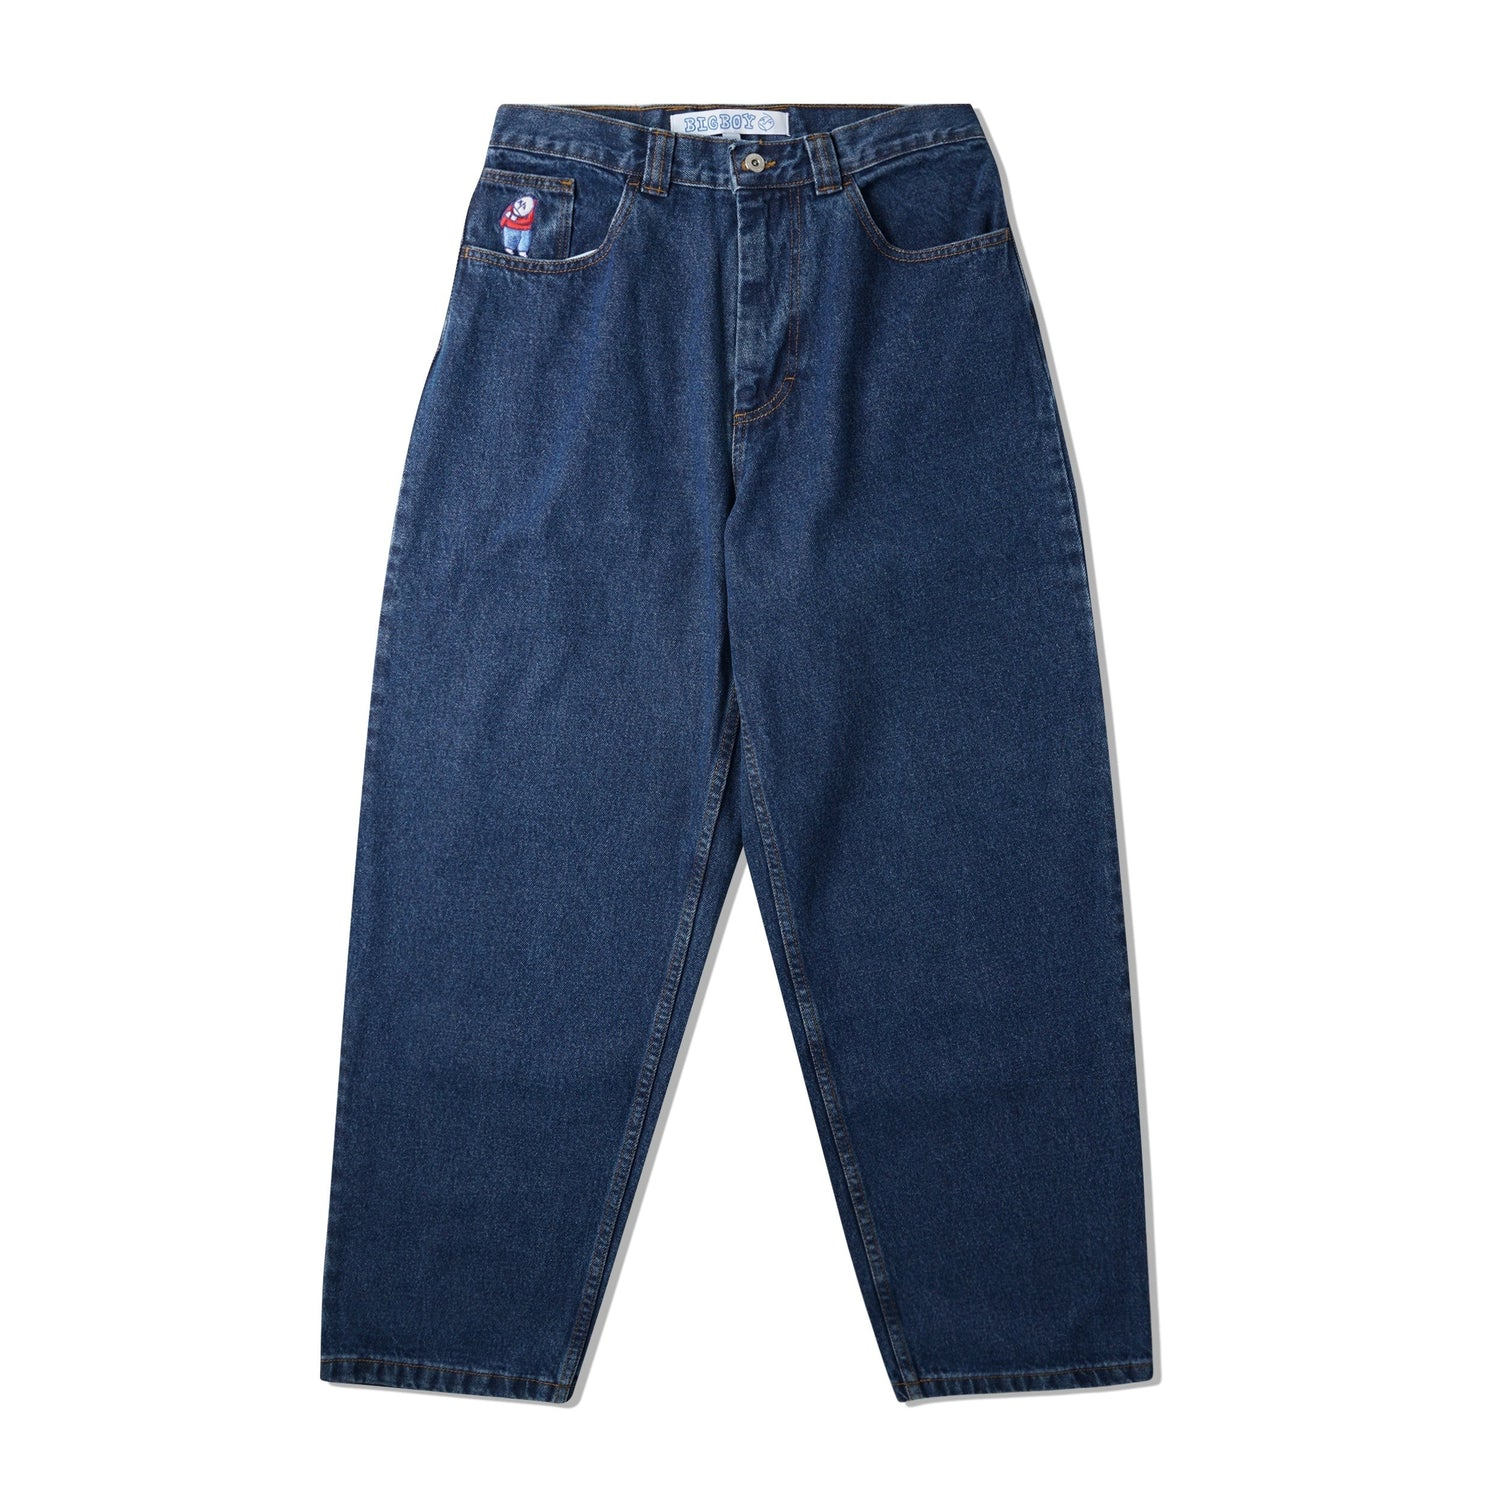 Big Boy Jeans, Dark Blue